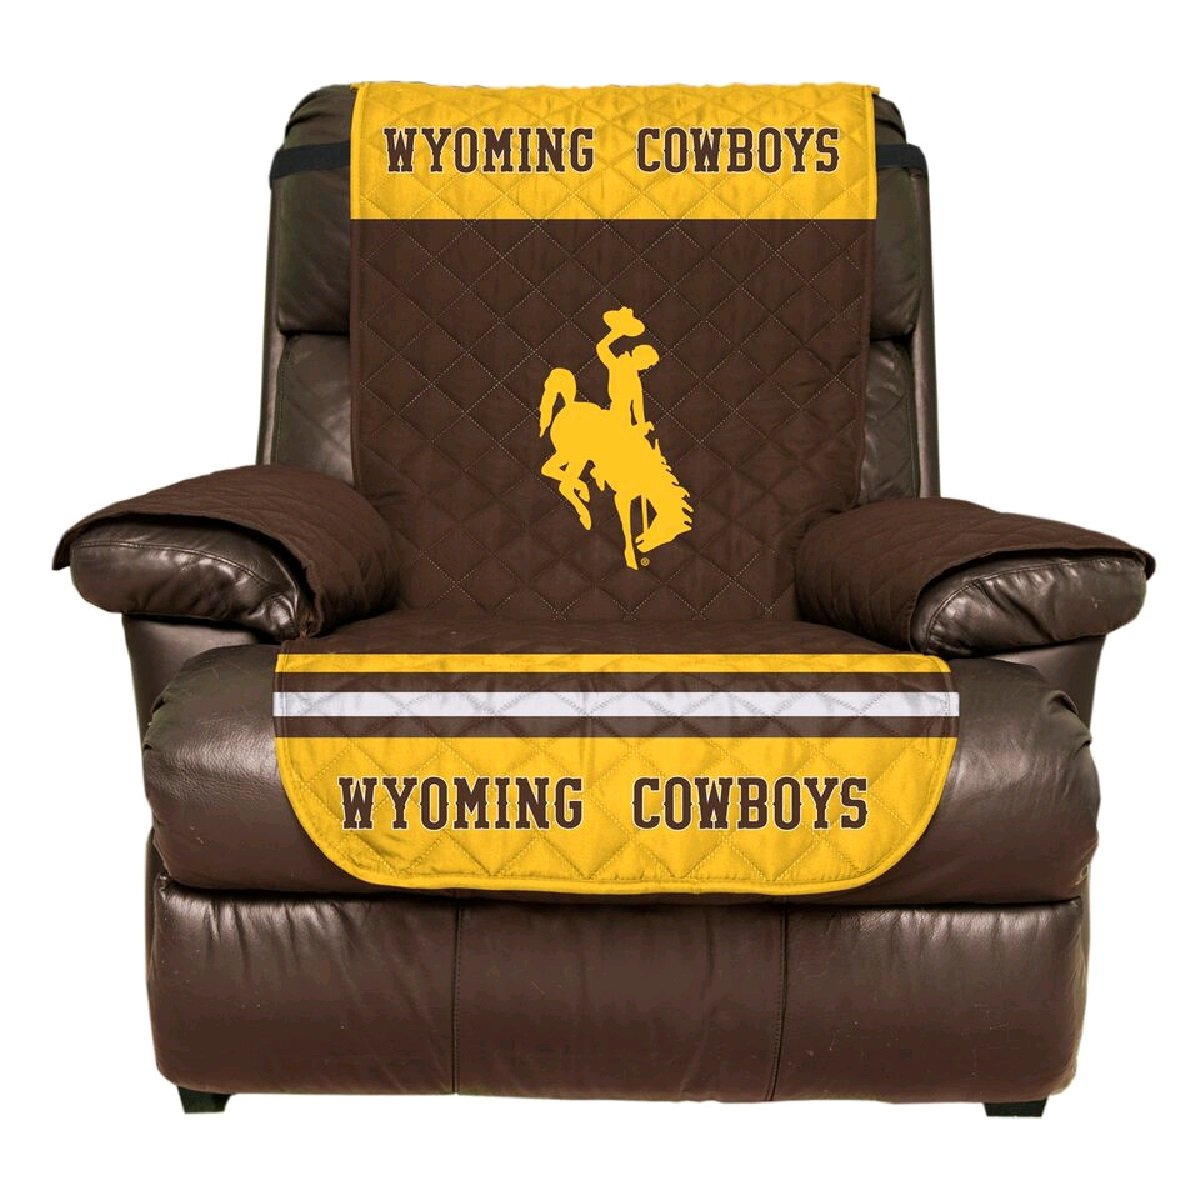 Reversible Couch Cover - College Team Sofa Slipcover Set / Furniture Protector - NCAA Officially Licensed (Recliner, University of Wyoming Cowboys)